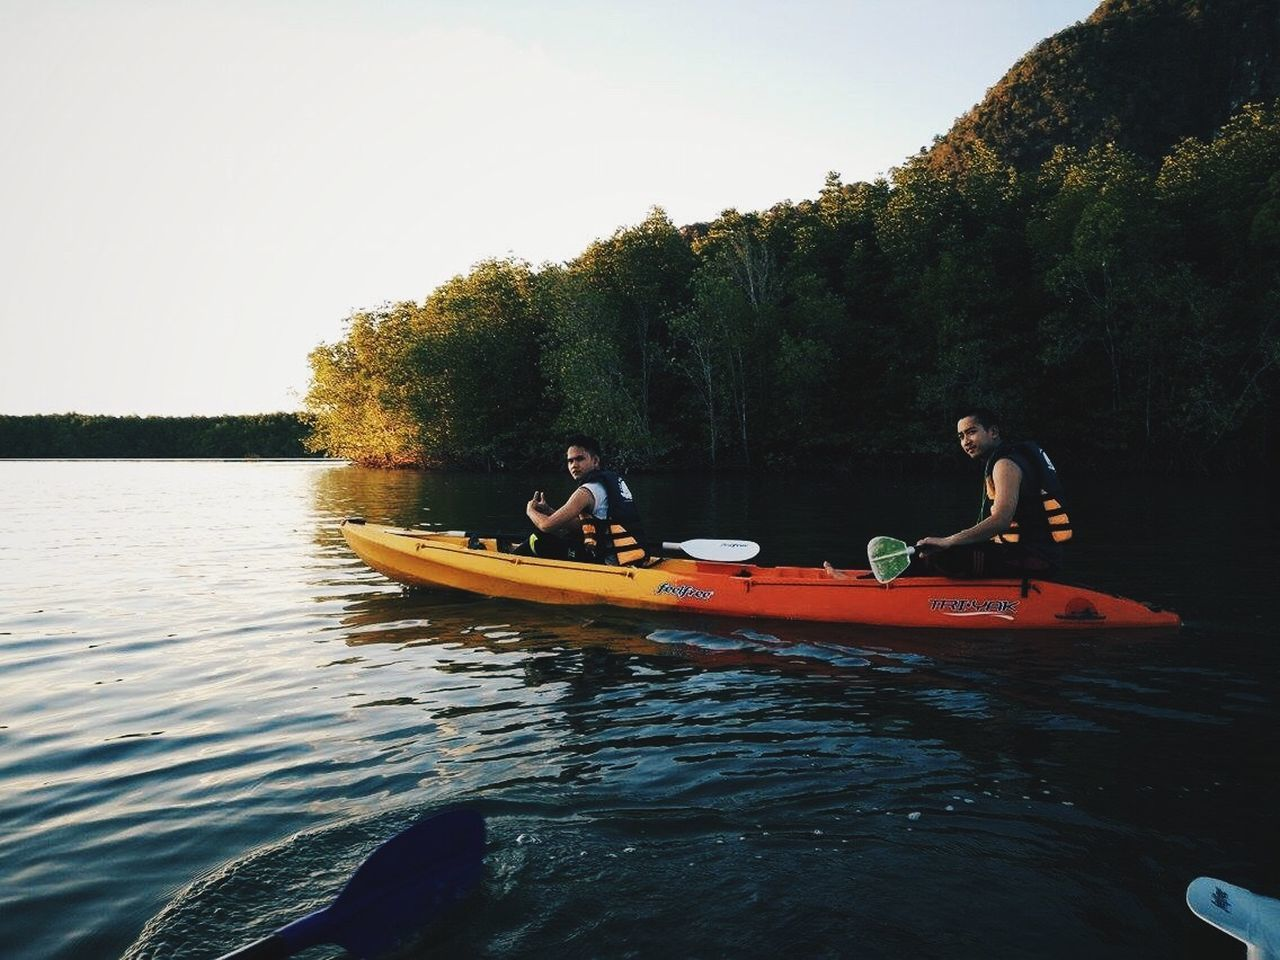 tree, leisure activity, river, nature, two people, togetherness, real people, water, oar, outdoors, day, nautical vessel, men, lifestyles, vacations, adventure, sitting, kayak, women, rowing, clear sky, sky, beauty in nature, people